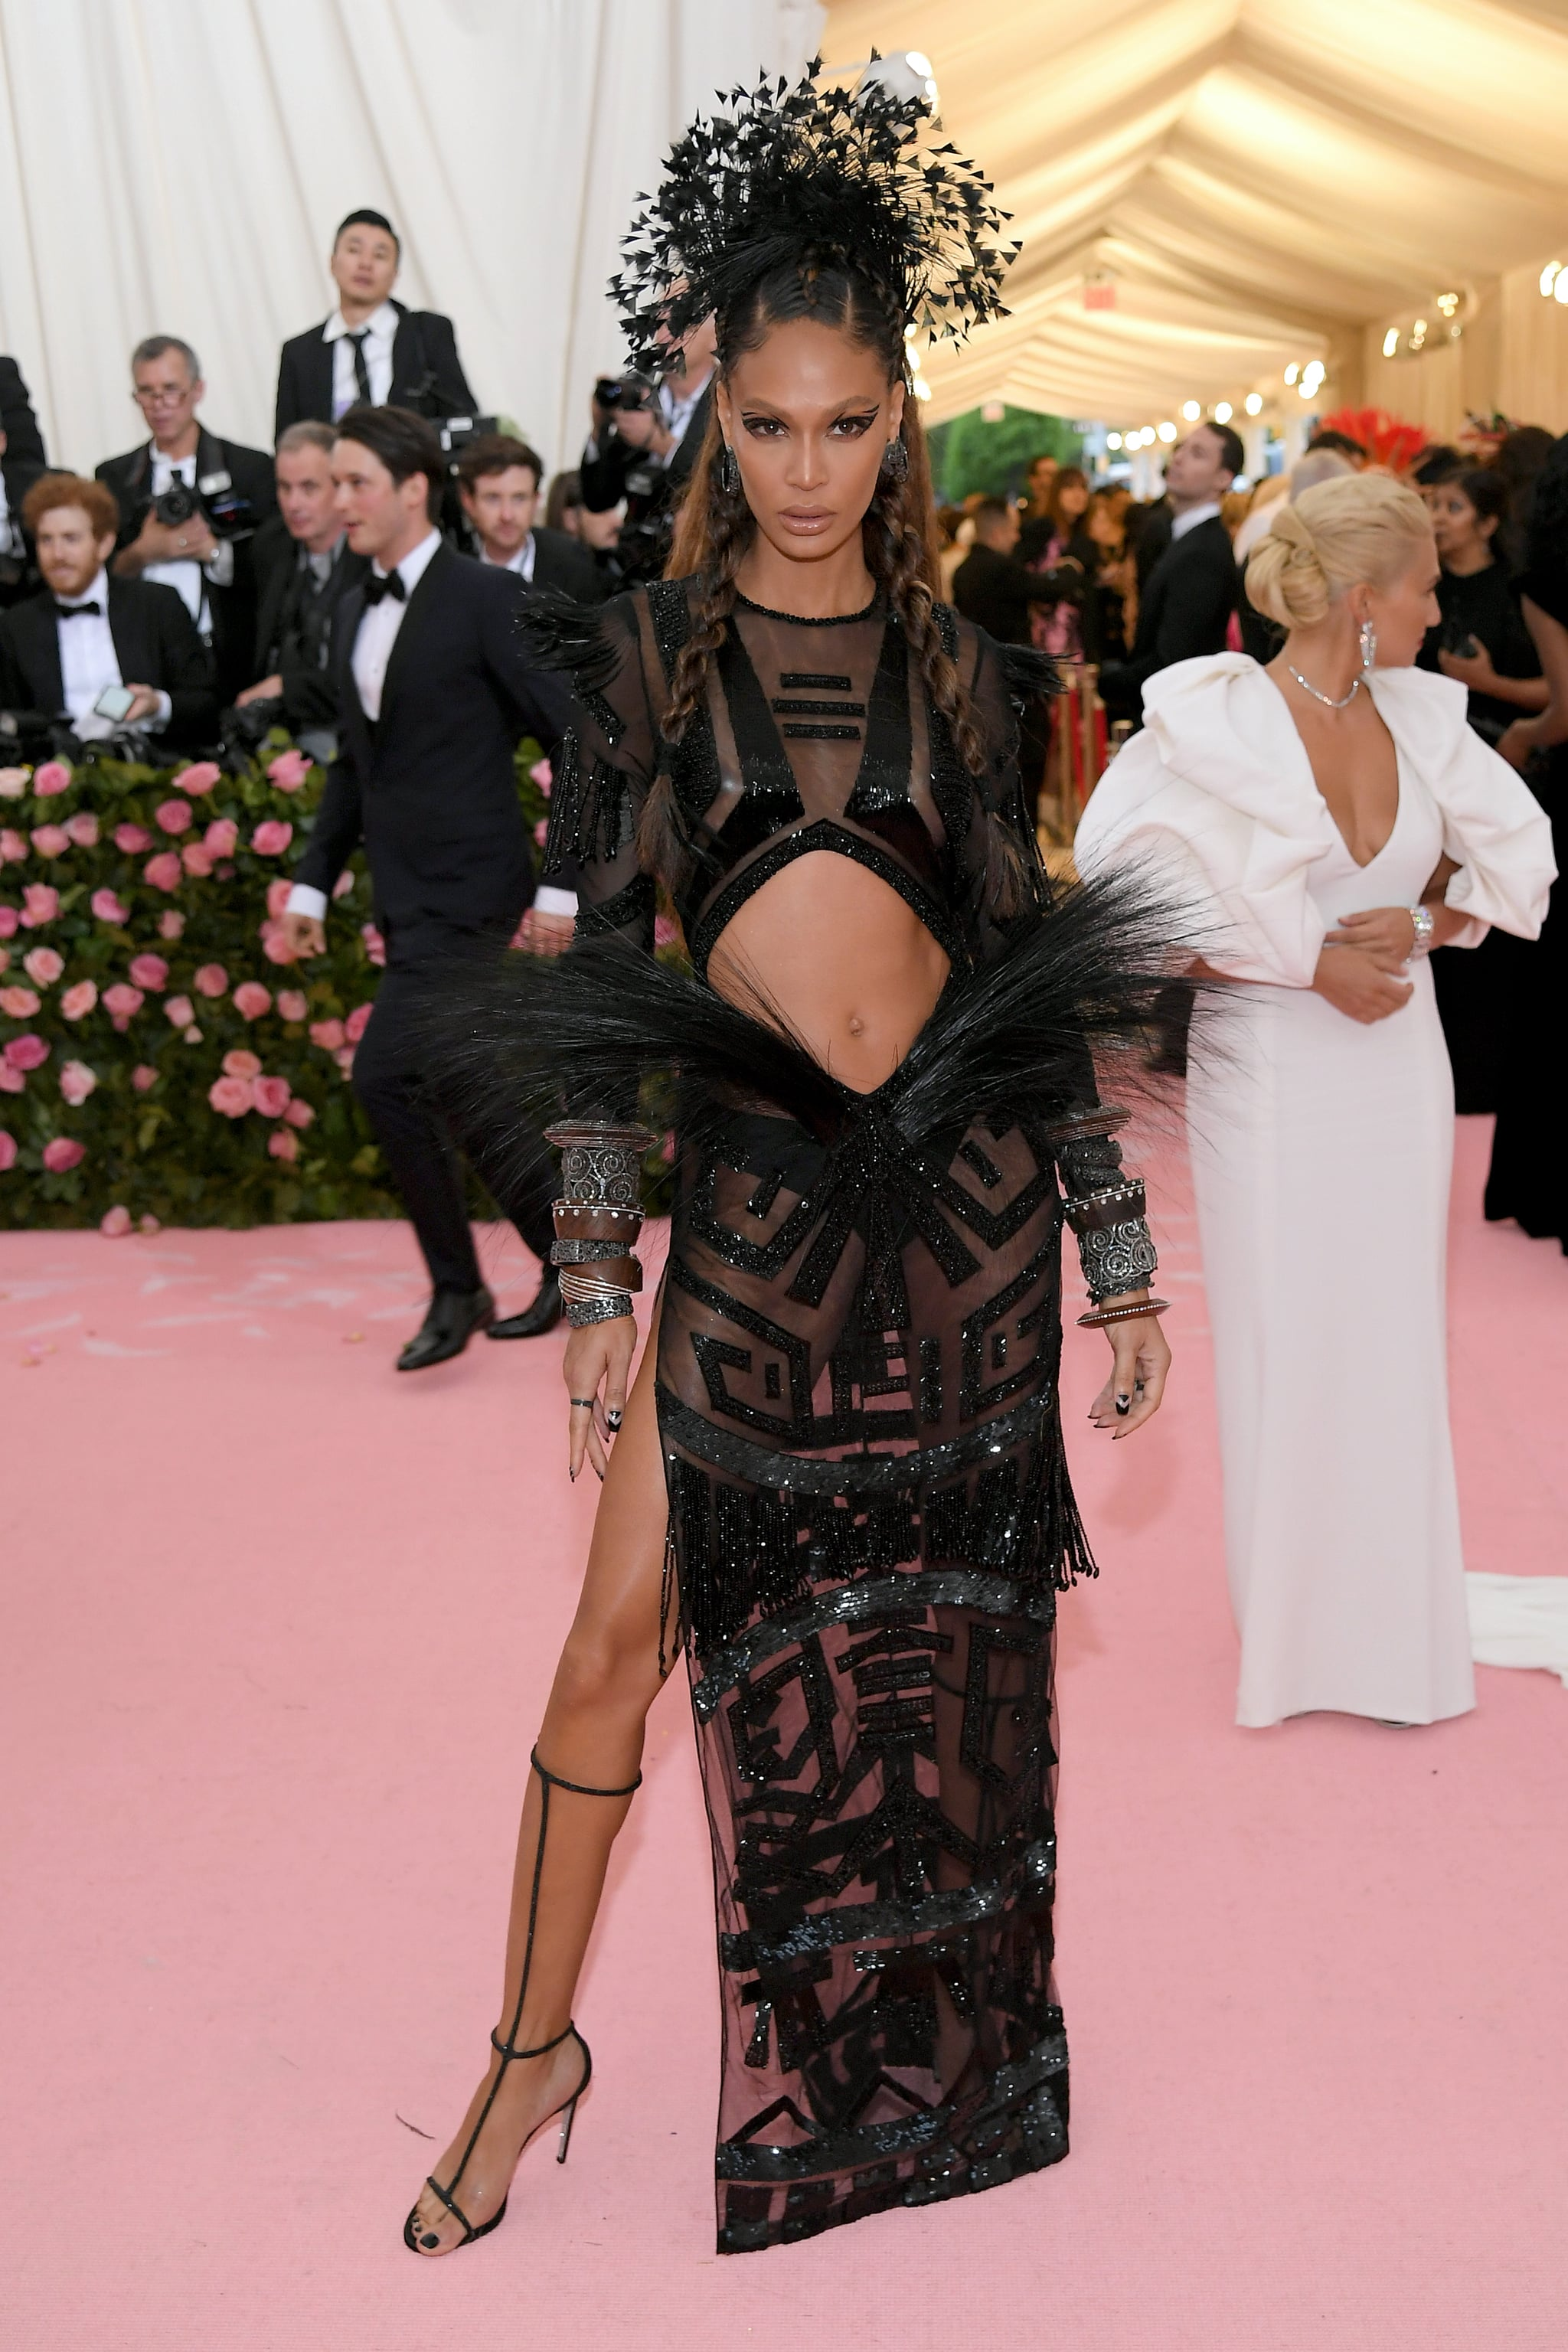 Joan Smalls at the 2019 Met Gala   These Met Gala Dresses Are So Damn Sexy, We're Gonna Need a Fan to Cool Off   POPSUGAR Fashion Photo 26